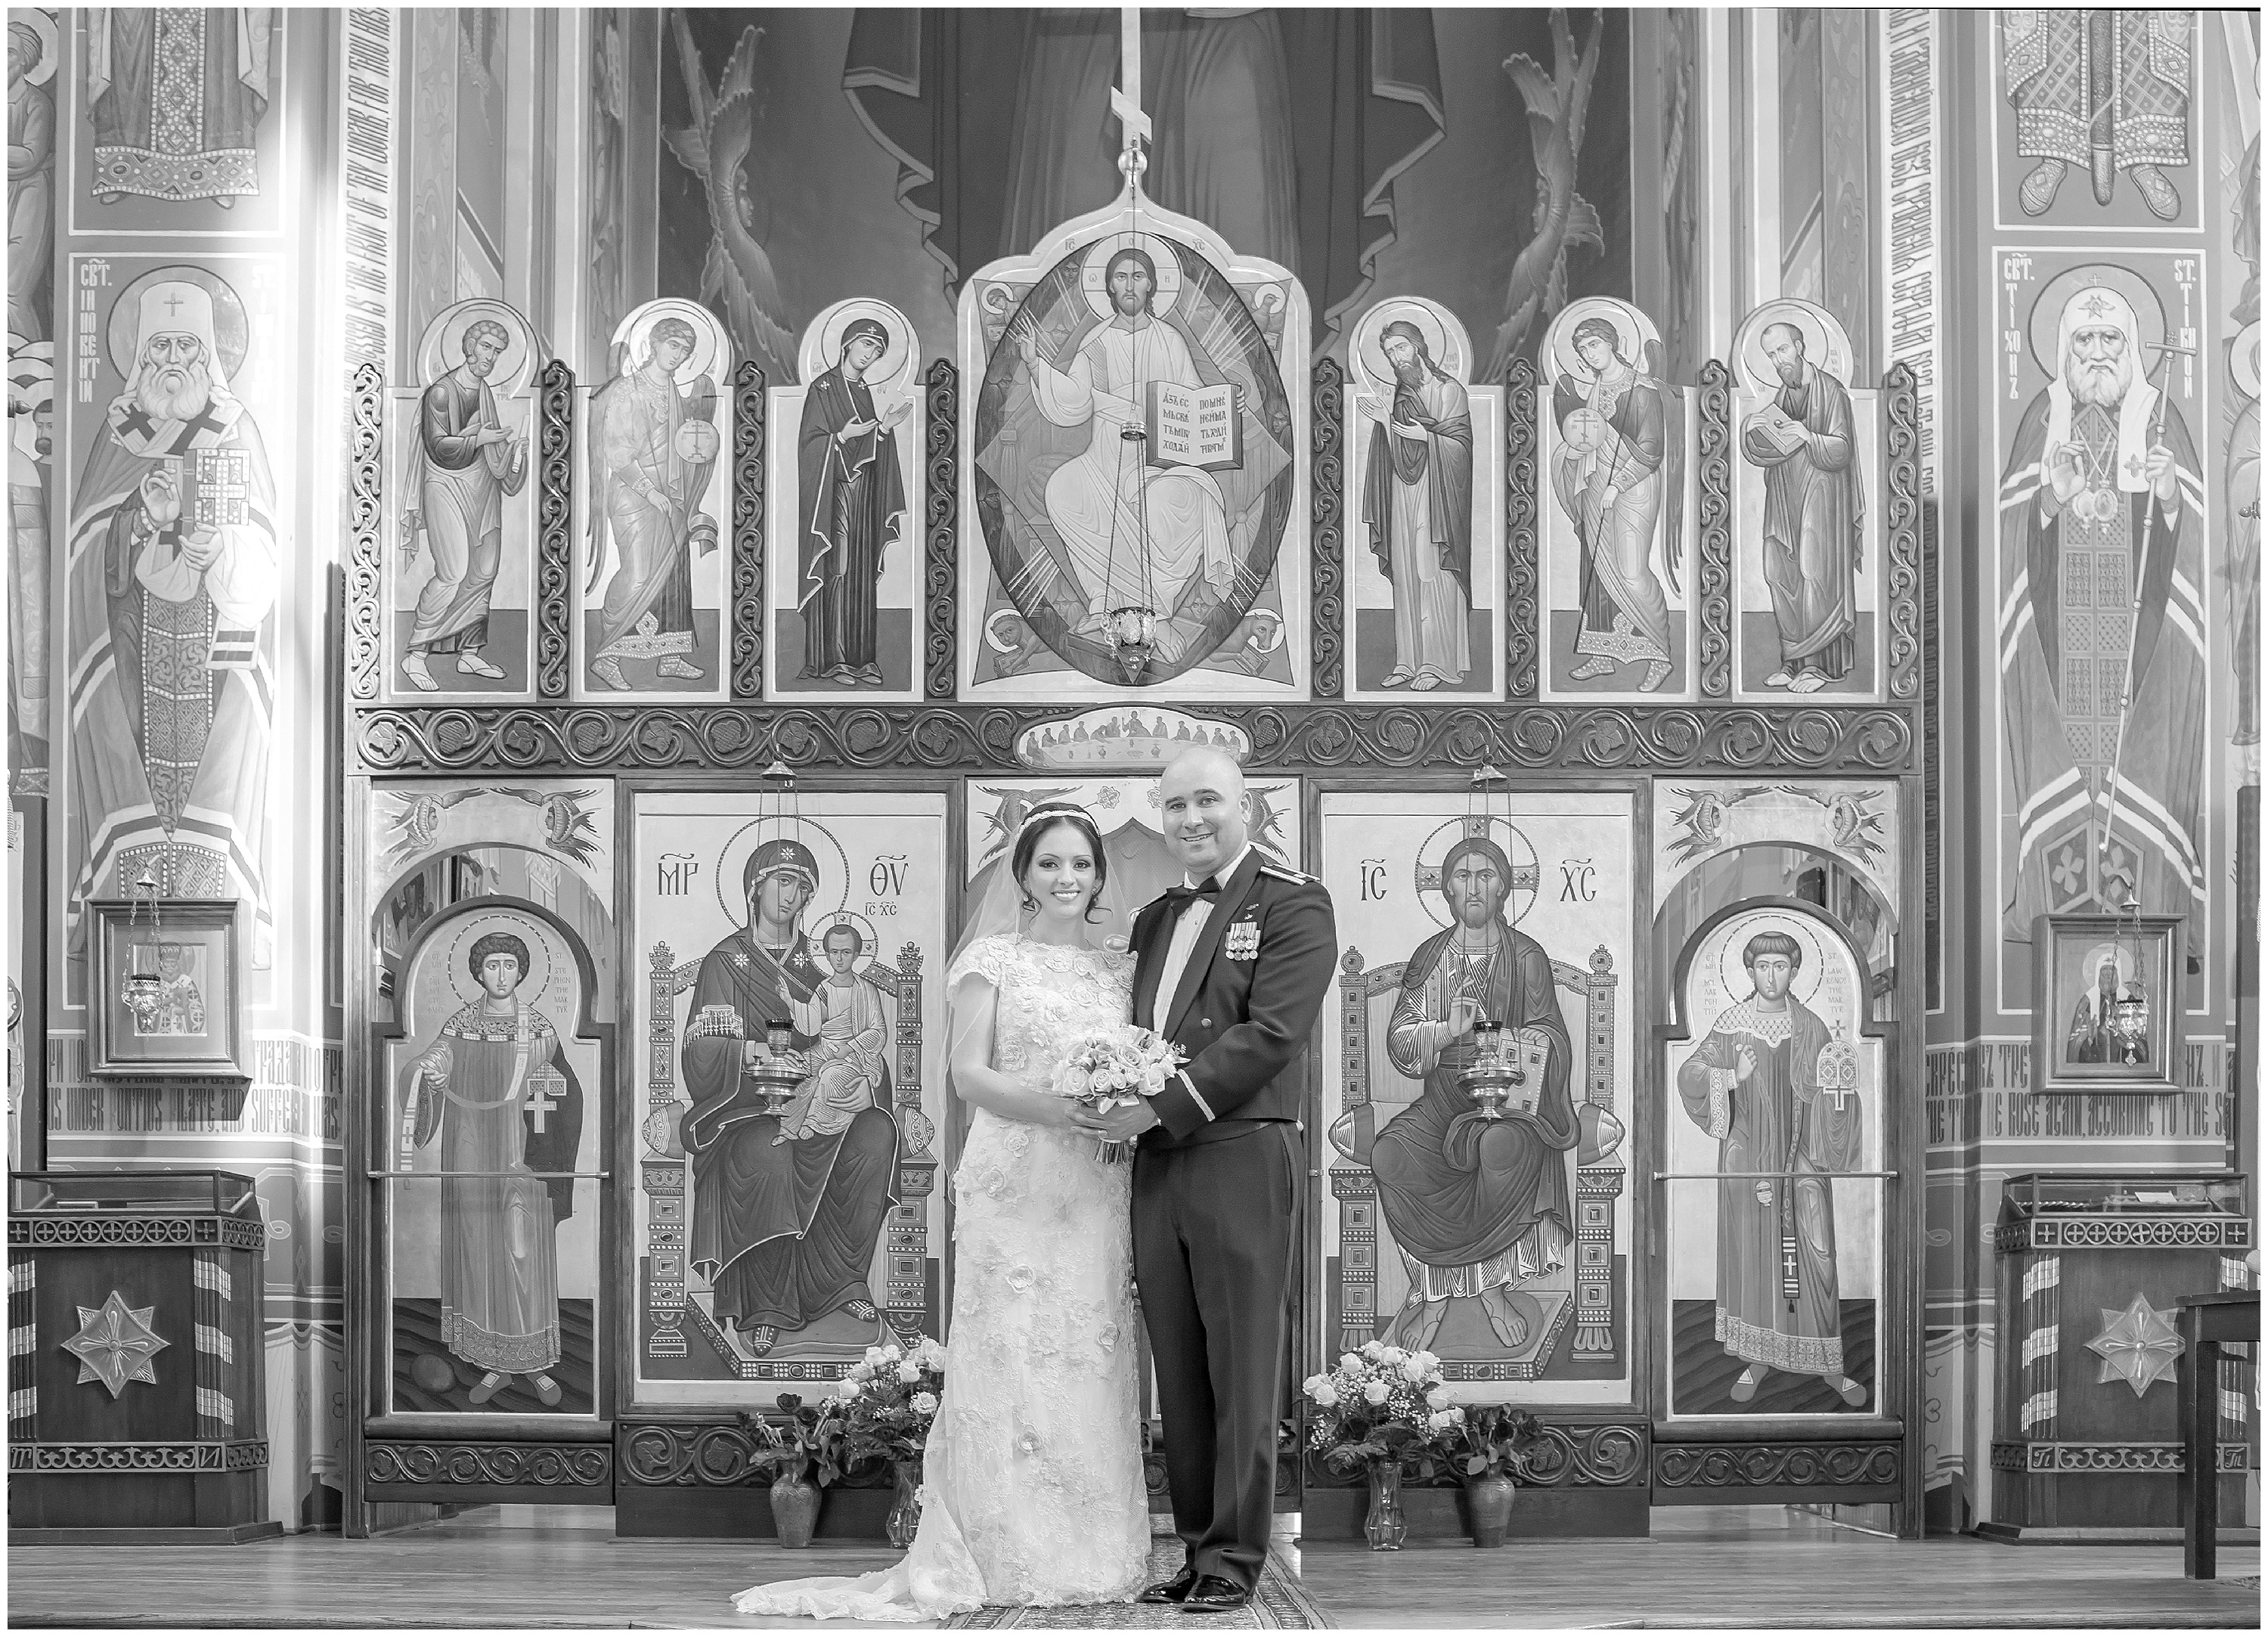 St-Nicholas-Cathedral-Gadsbys-Tavern-Museum-DC-Wedding-Photography-LizStewartPhoto0100026